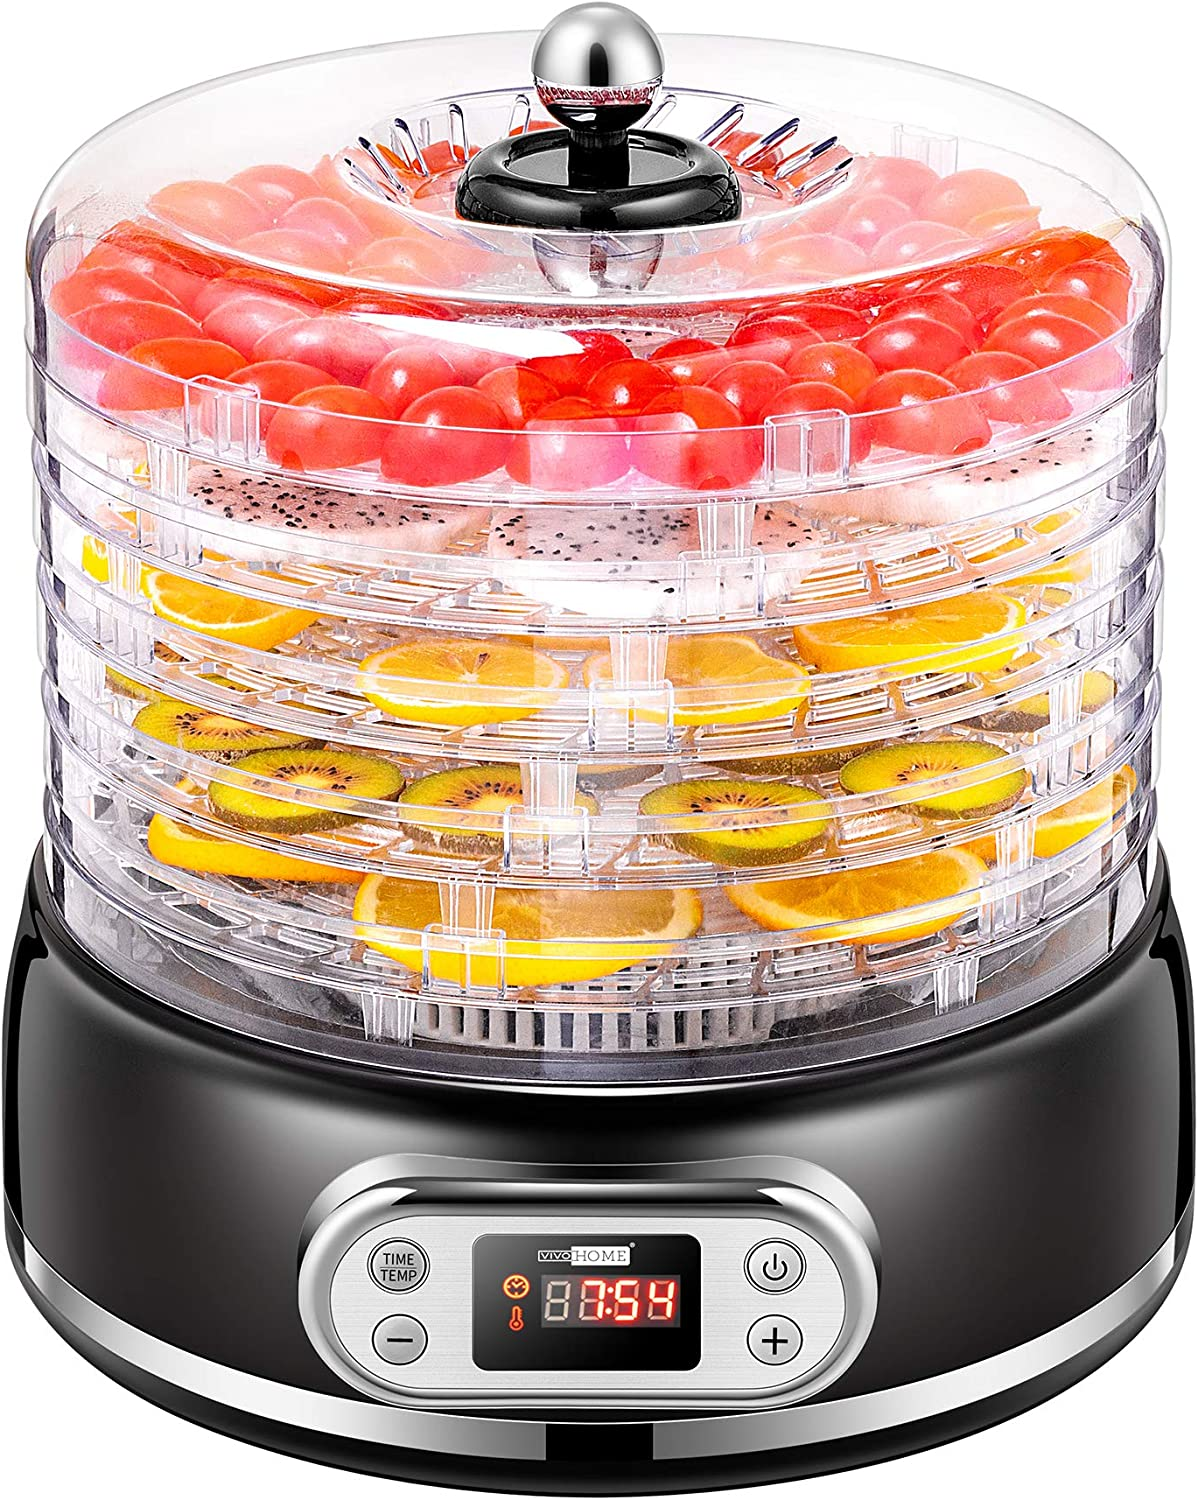 VIVOHOME Electric 400W 5 Trays Round Food Dehydrator Machine with Digital Timer and Temperature Control for Fruit Vegetable Meat Beef Jerky Maker BPA Free Black